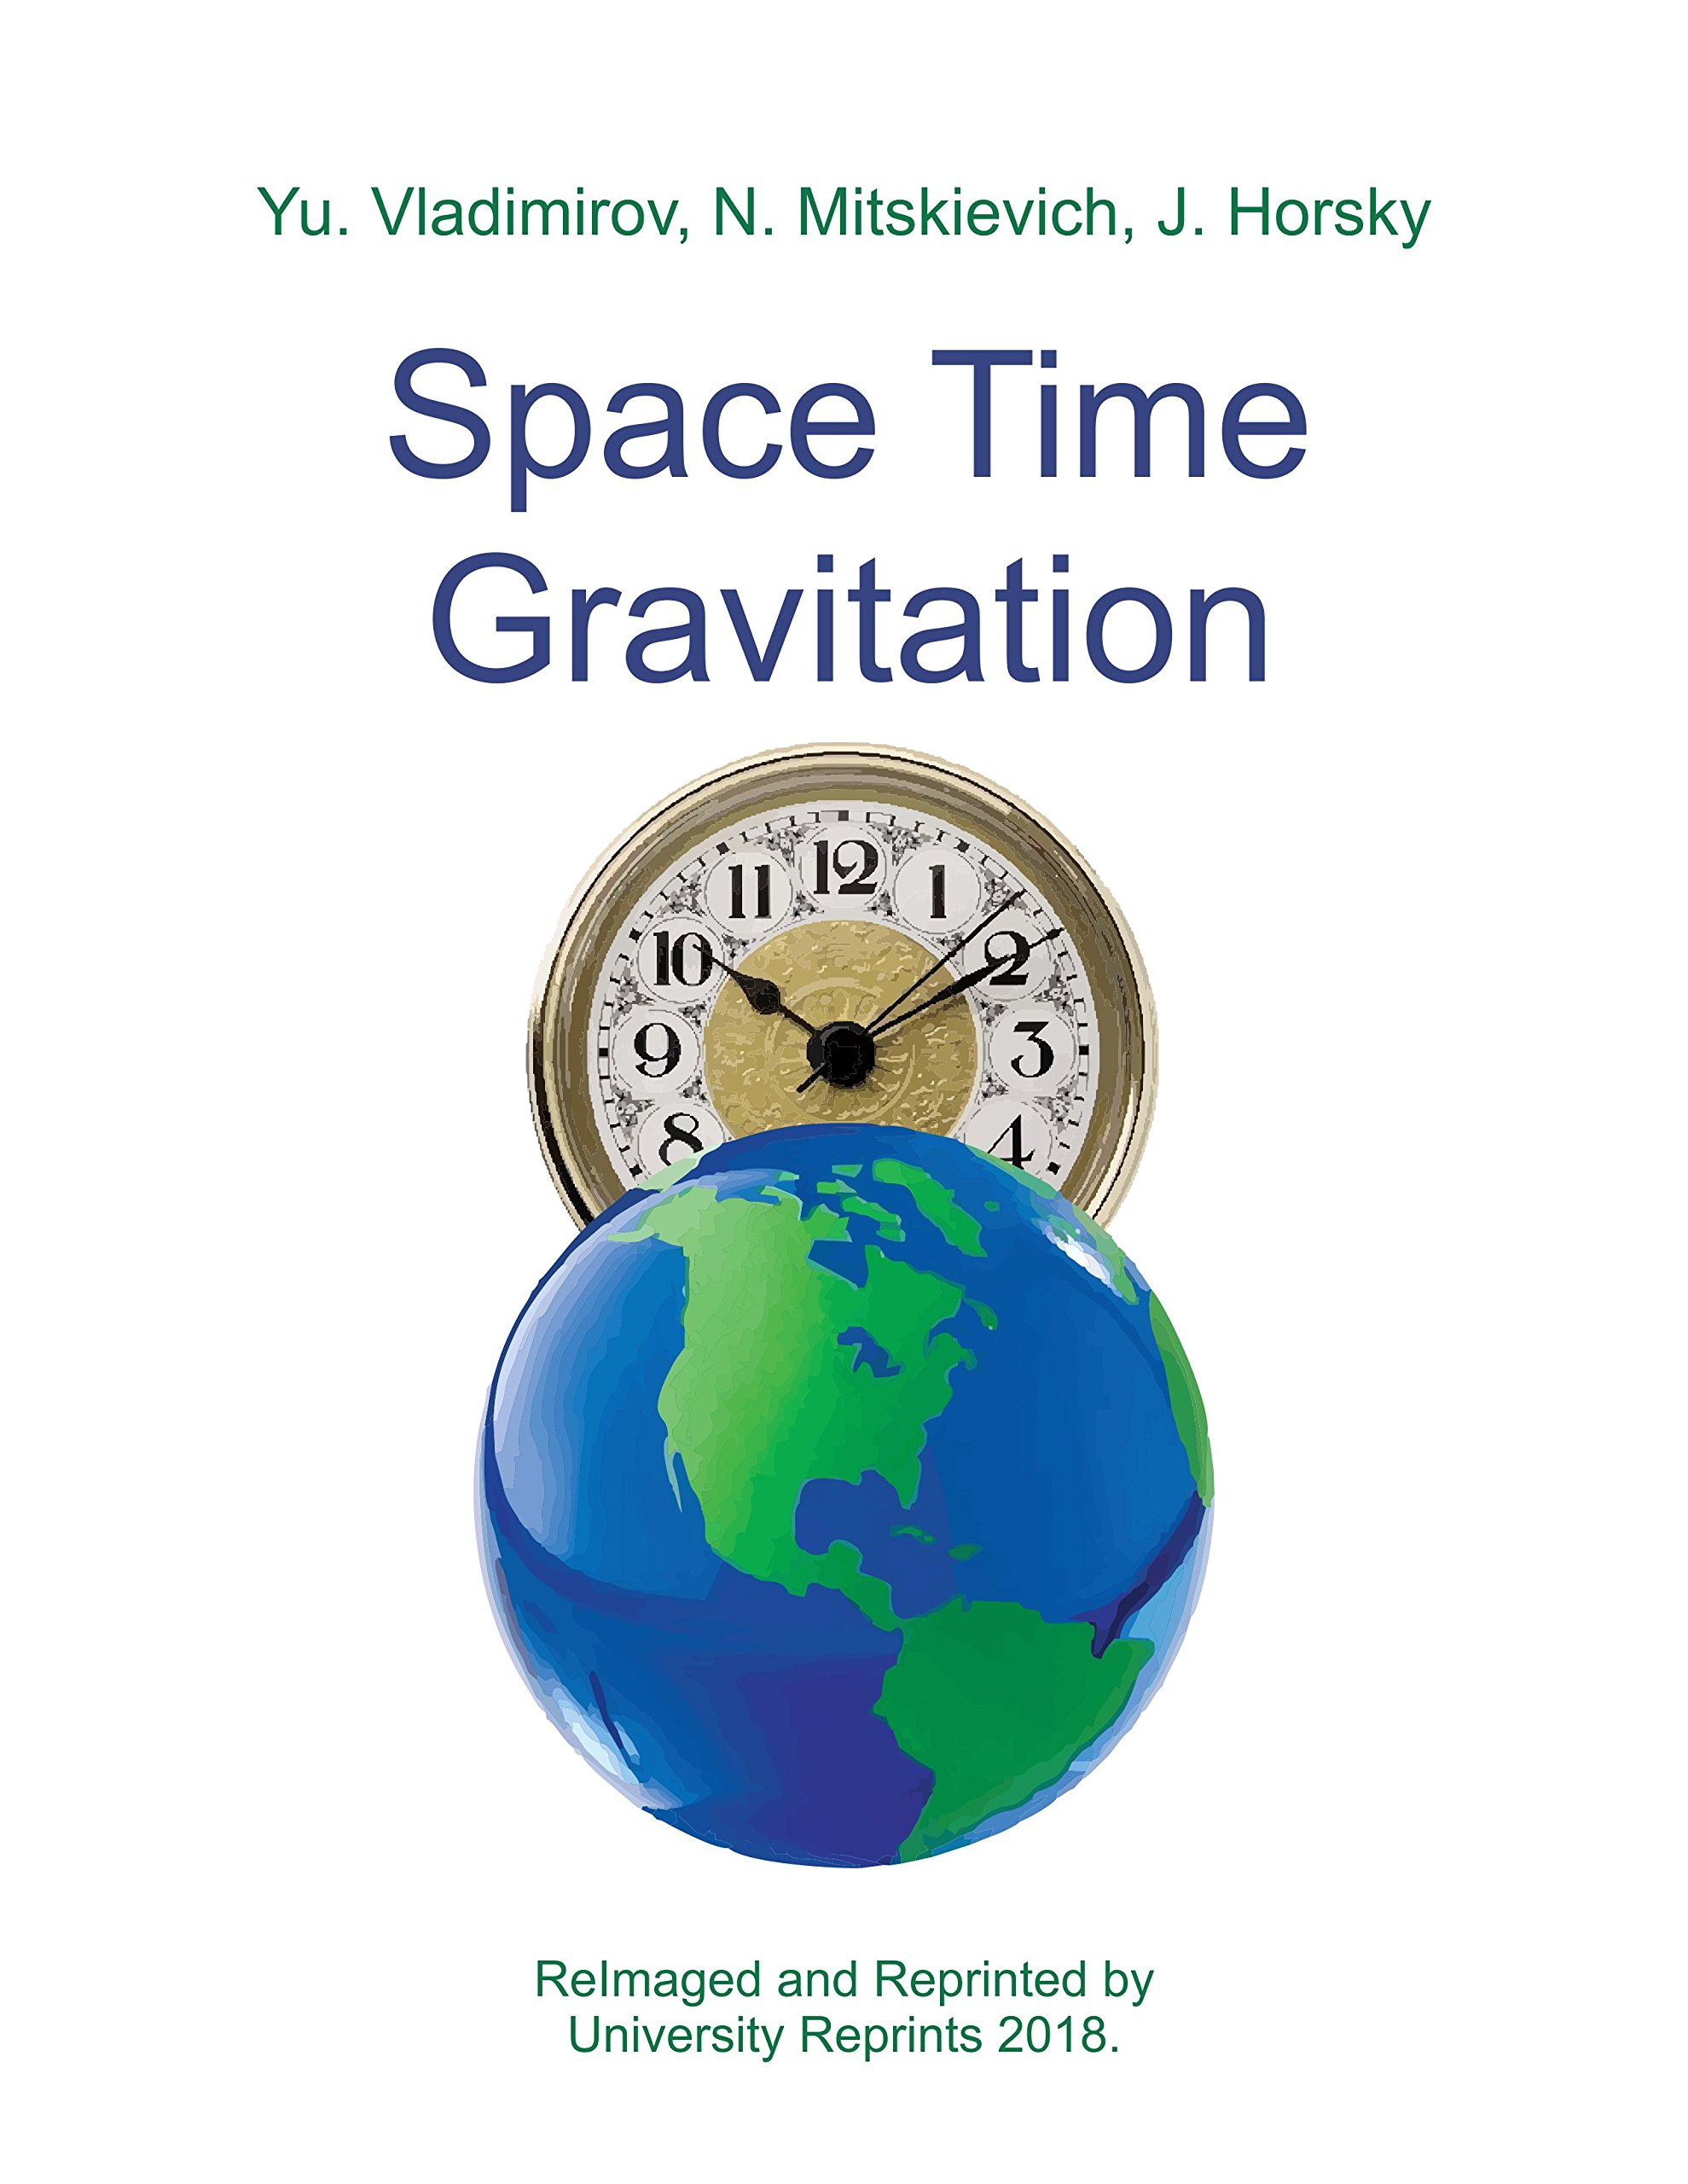 Space Time Gravitation by Yu. Vladimirov, N. Mitskievich, J. Horsky [Re-Imaged from Best Original for Greater Clarity. Student Loose Leaf Facsimile Edition. 2018] ebook